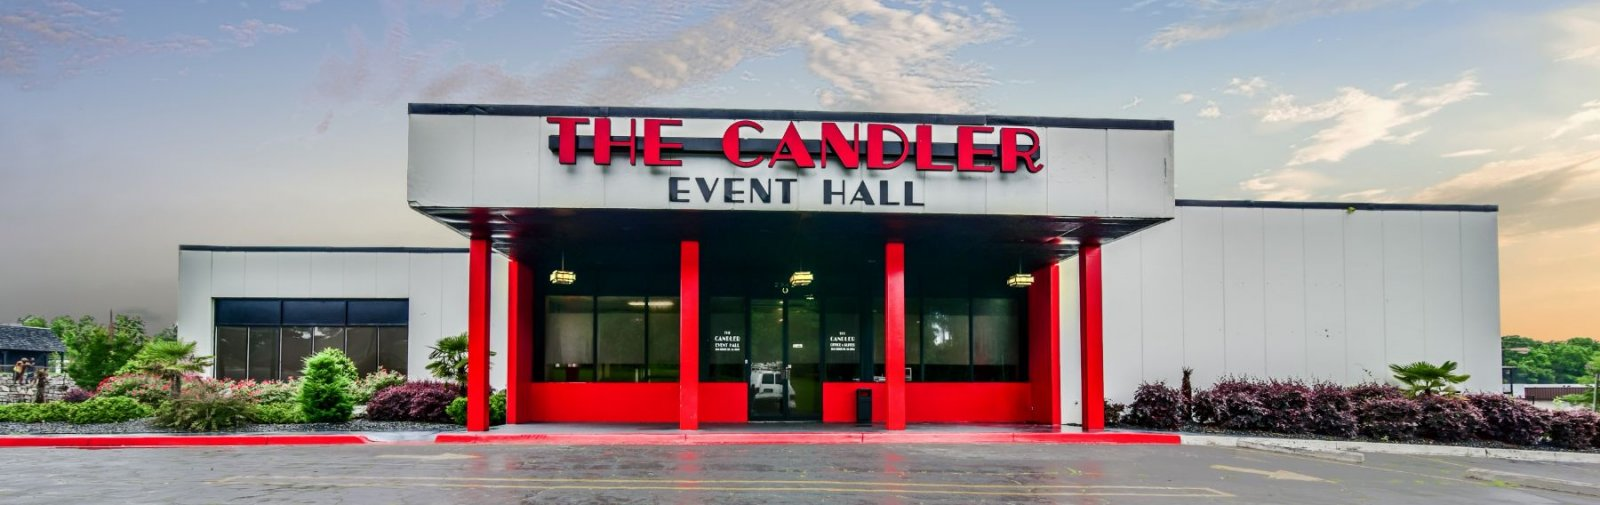 Candler Event Hall